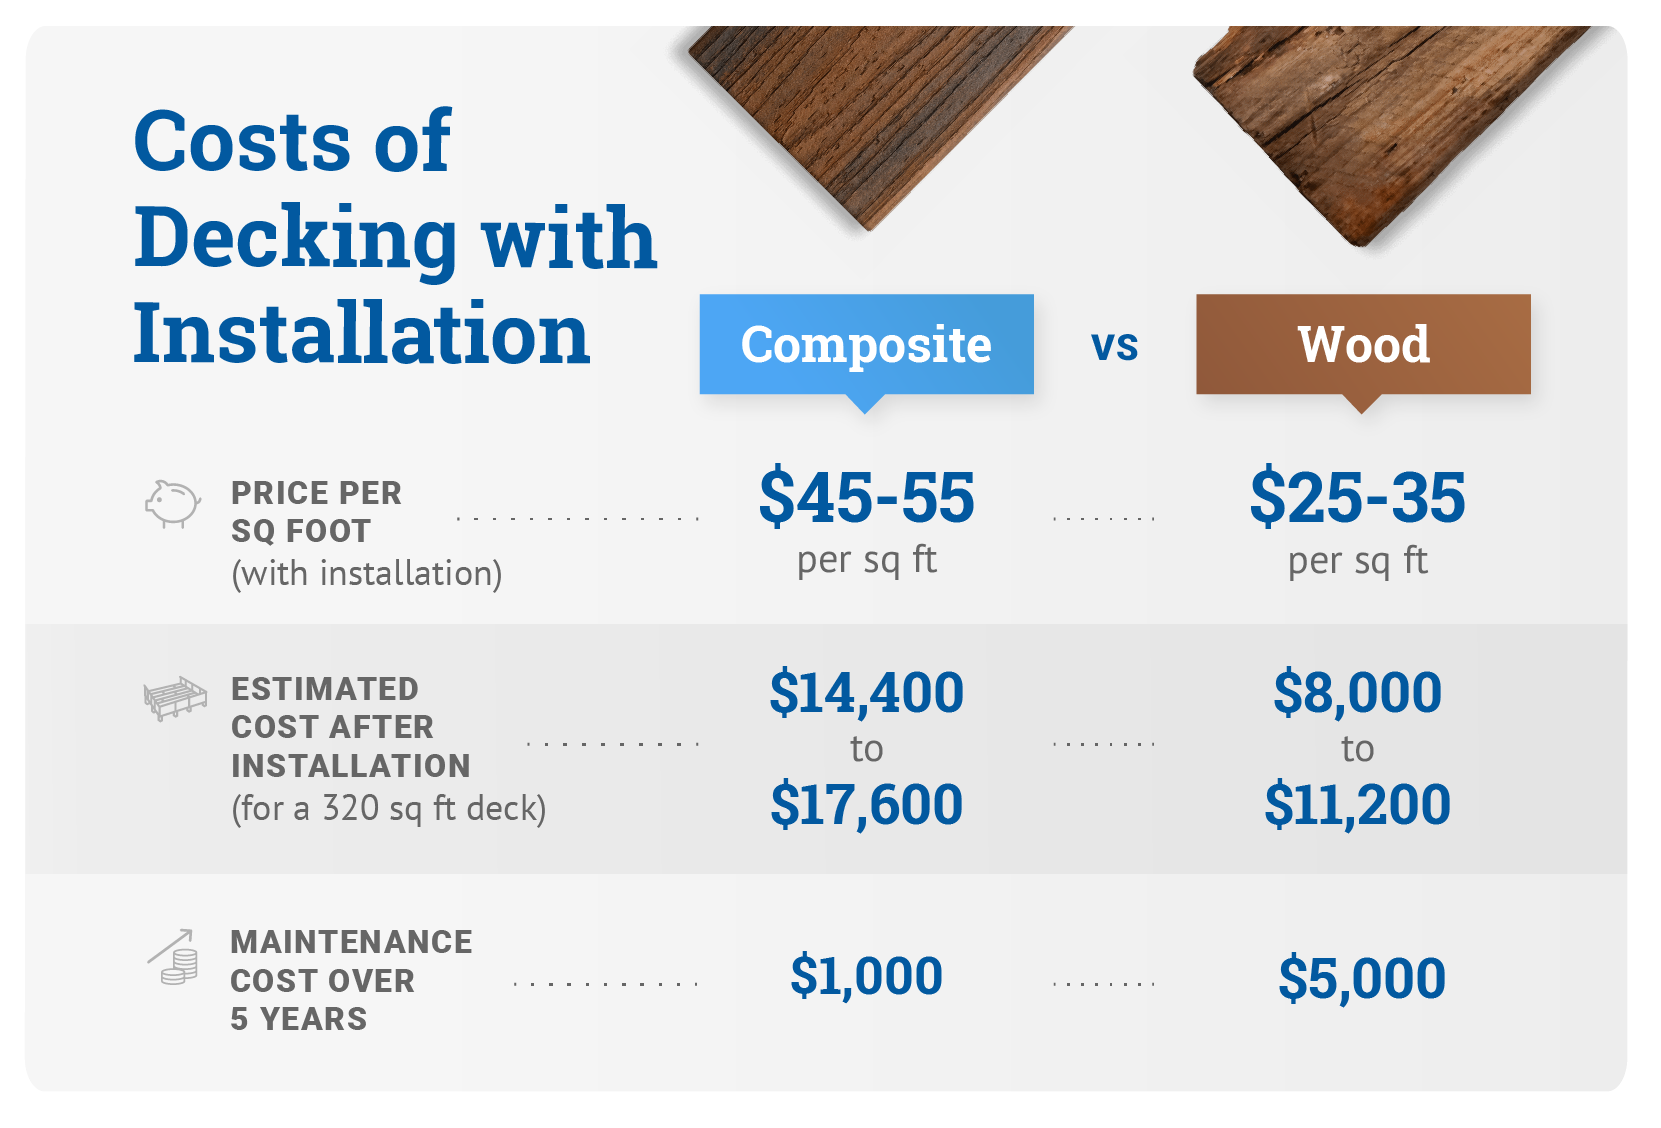 Costs Of Decking With Installation Graphic